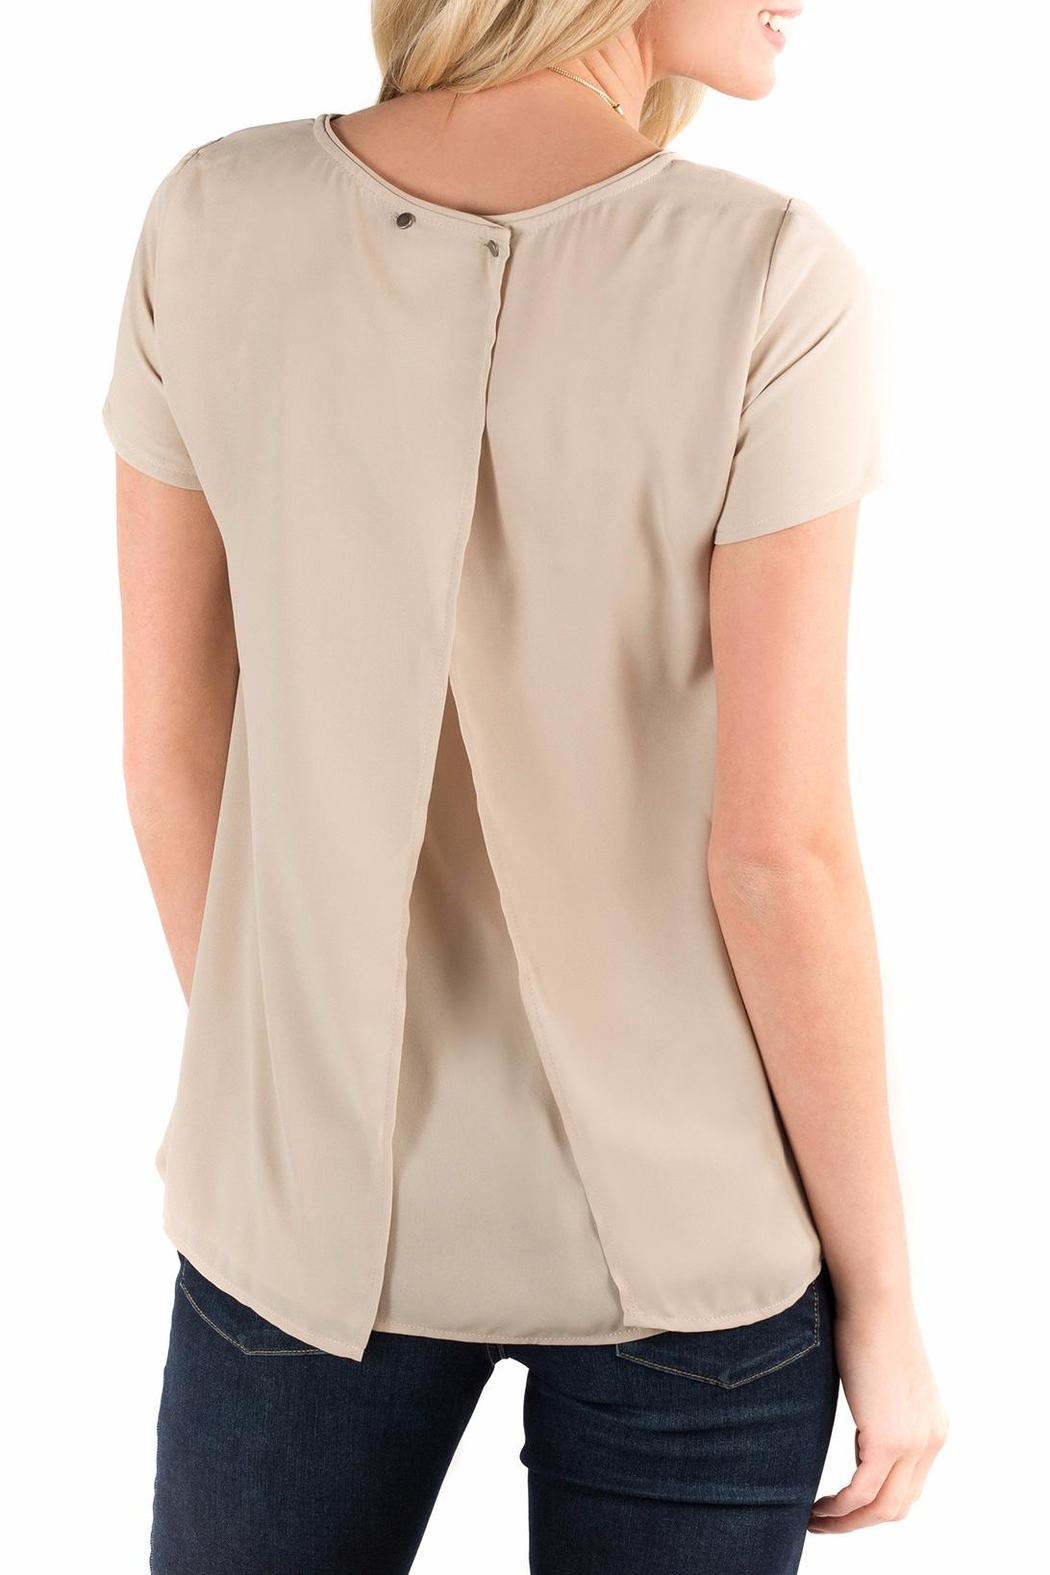 Downeast Basics Beige Button Back Blouse - Front Full Image